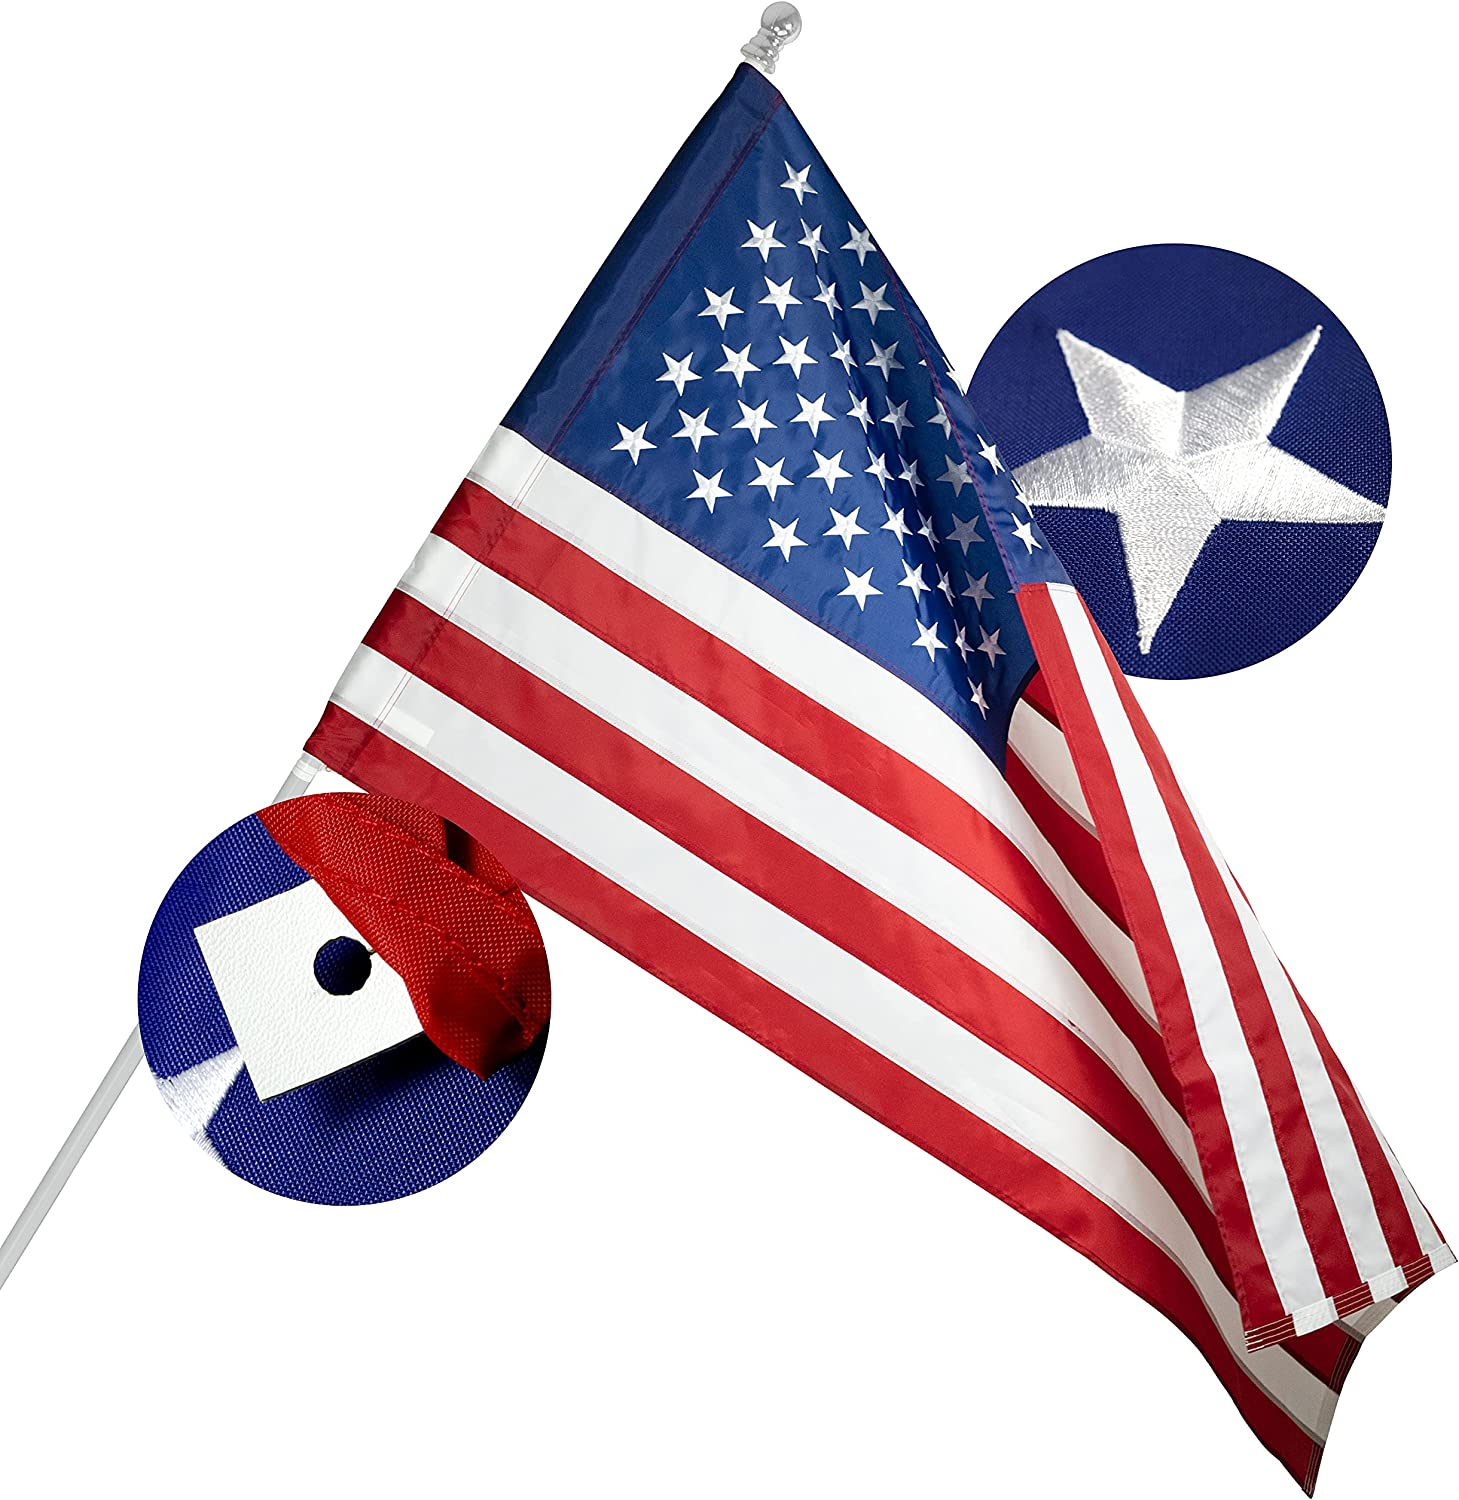 G128 - American Mail order cheap USA US New arrival Flag 3x5 Banner Embr Style Pole Ft Sleeve